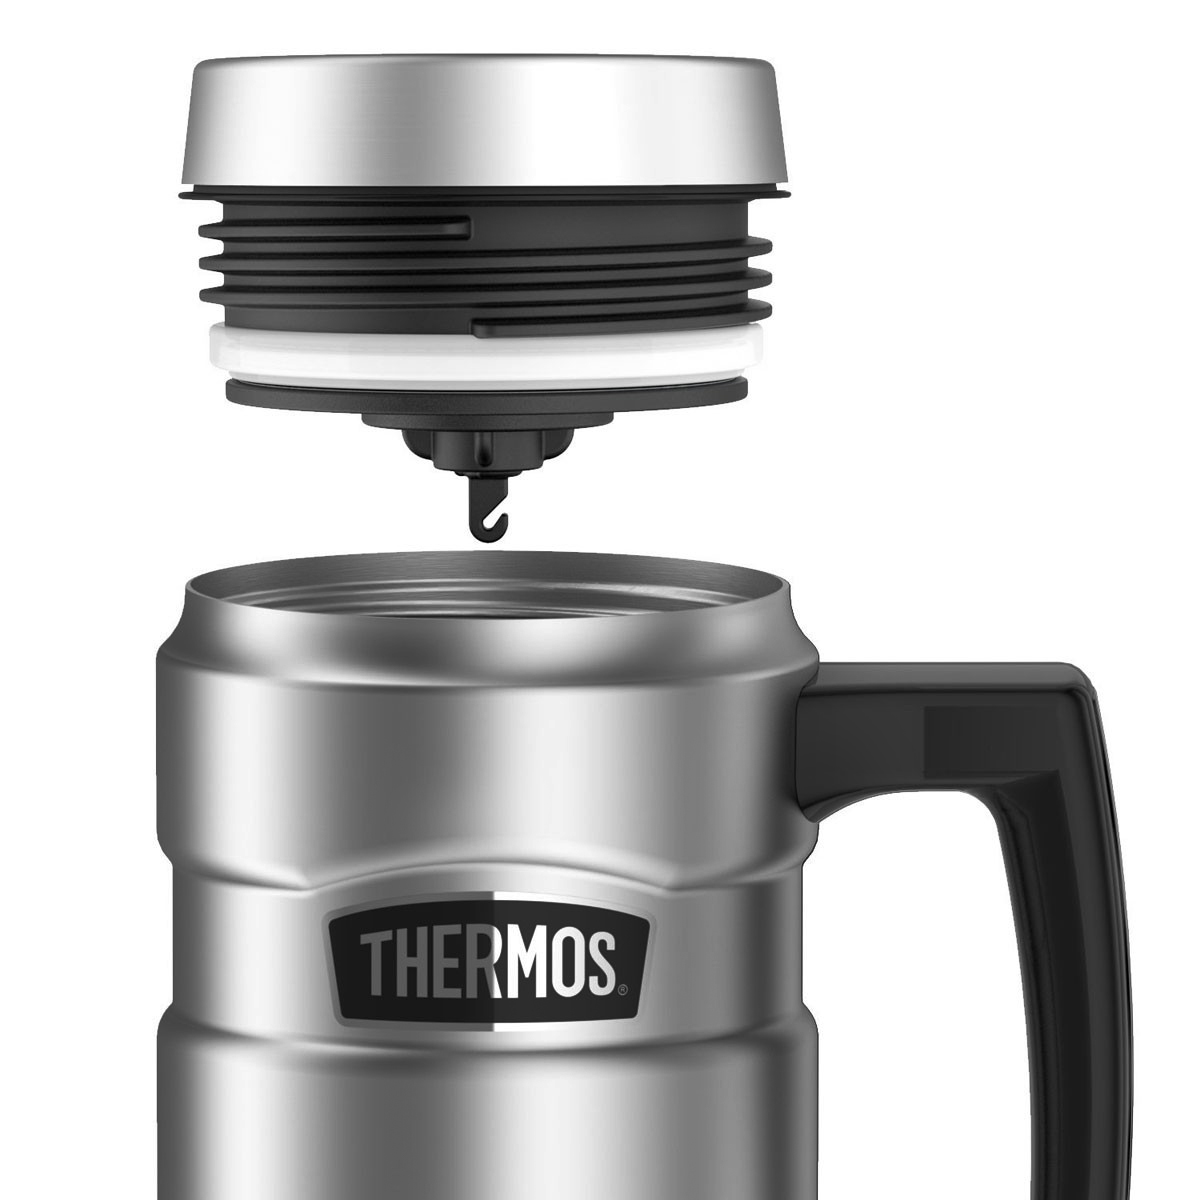 thumbnail 26 - Thermos 16 oz. Stainless King Insulated Stainless Steel Travel Mug with Handle